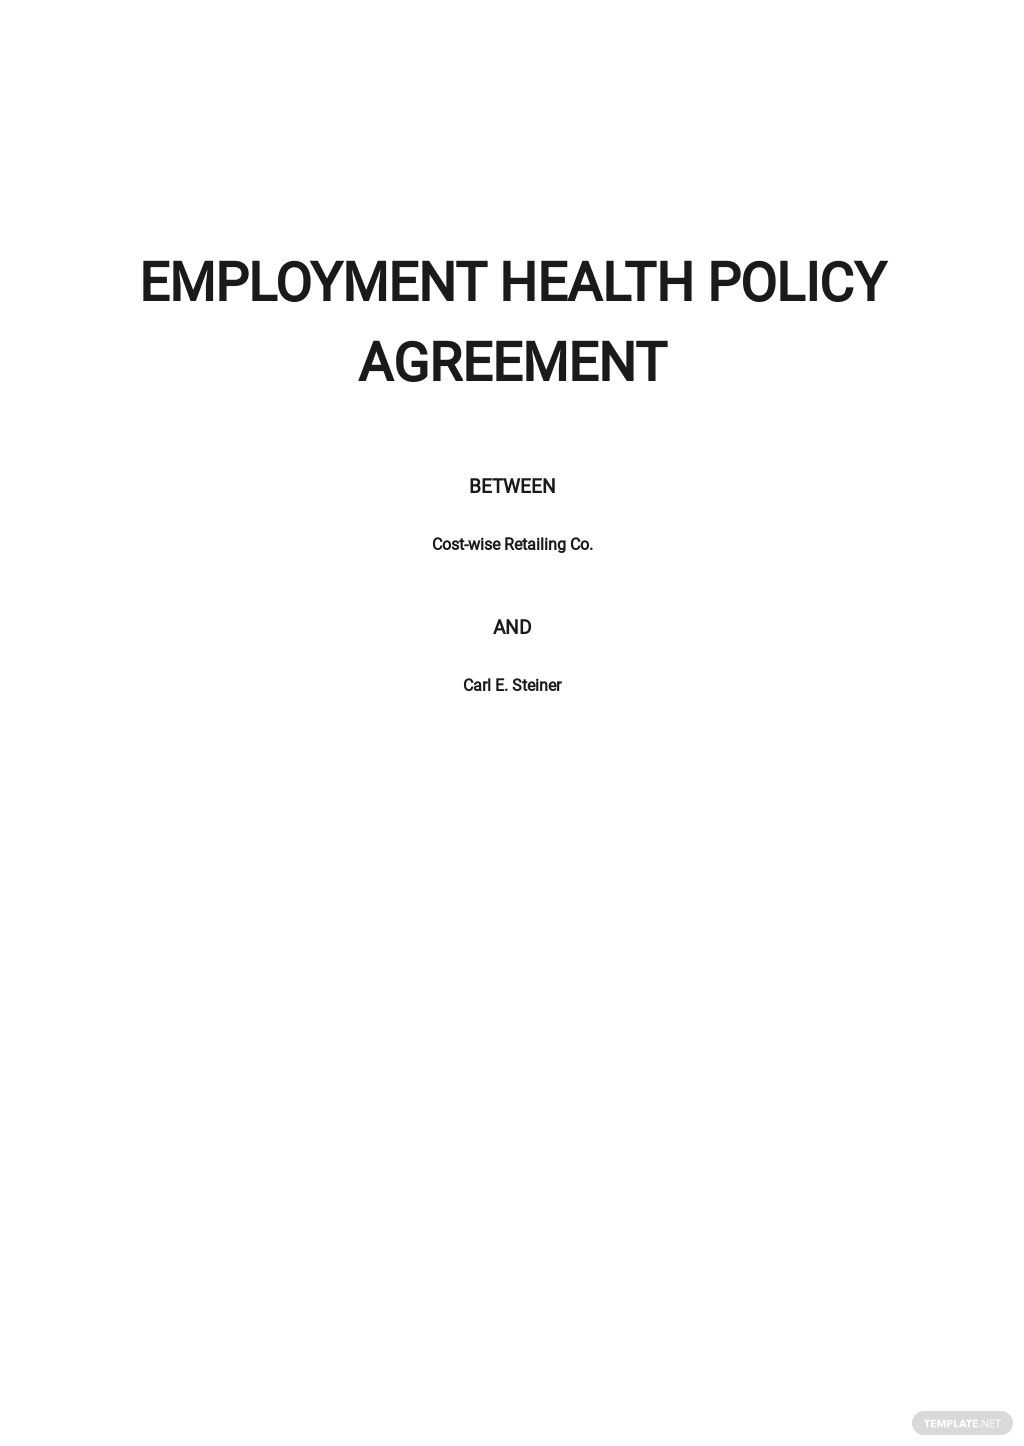 Employee Health Policy Agreement Template.jpe